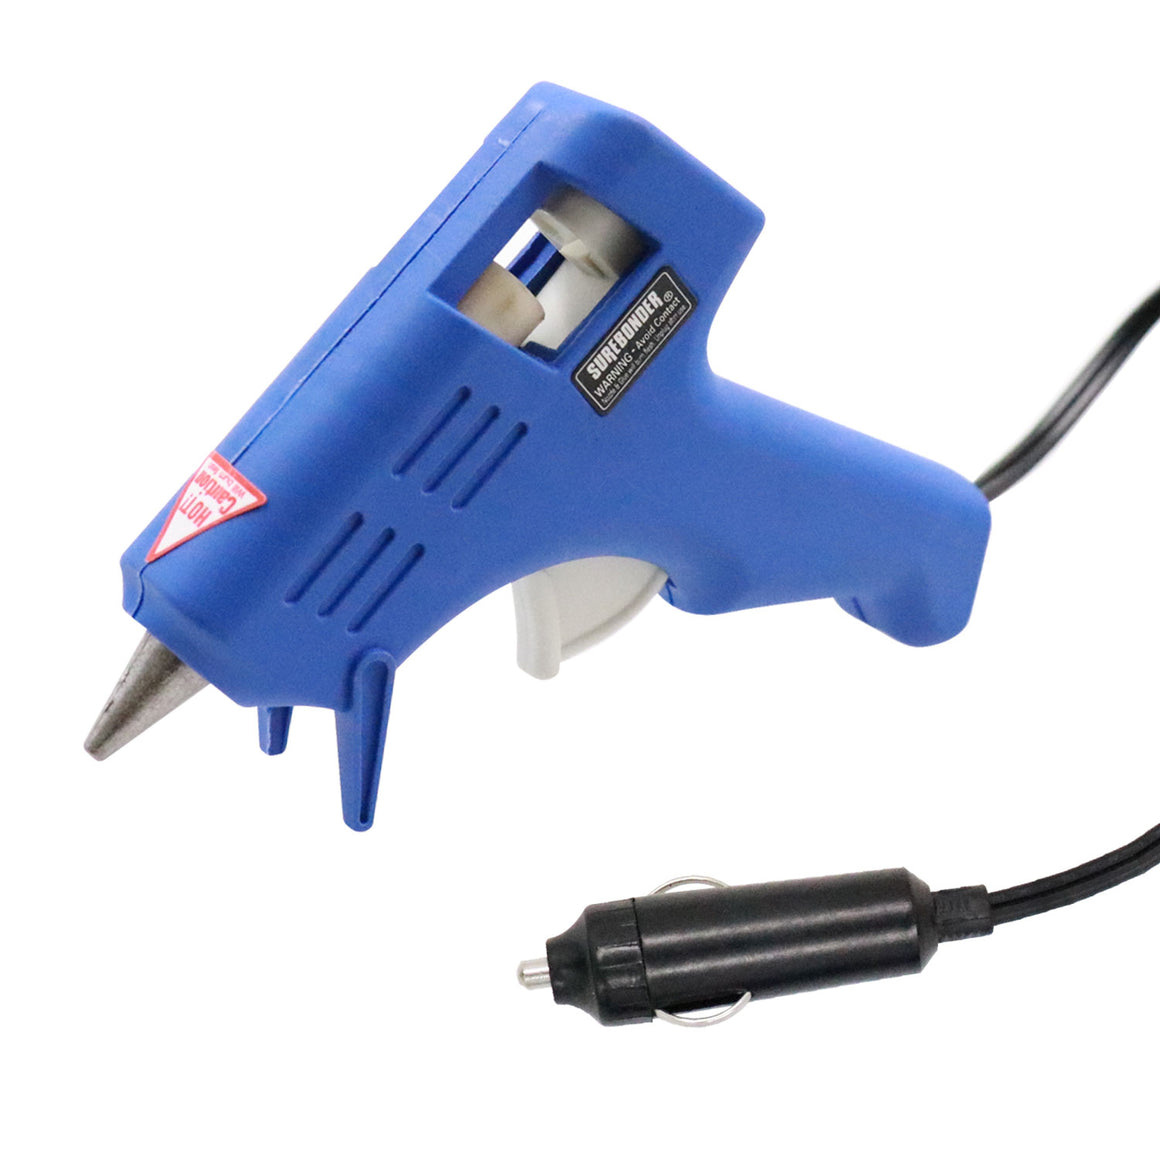 10 Watt Mini Size High Temperature Hot Glue Gun - Car Edition - Surebonder